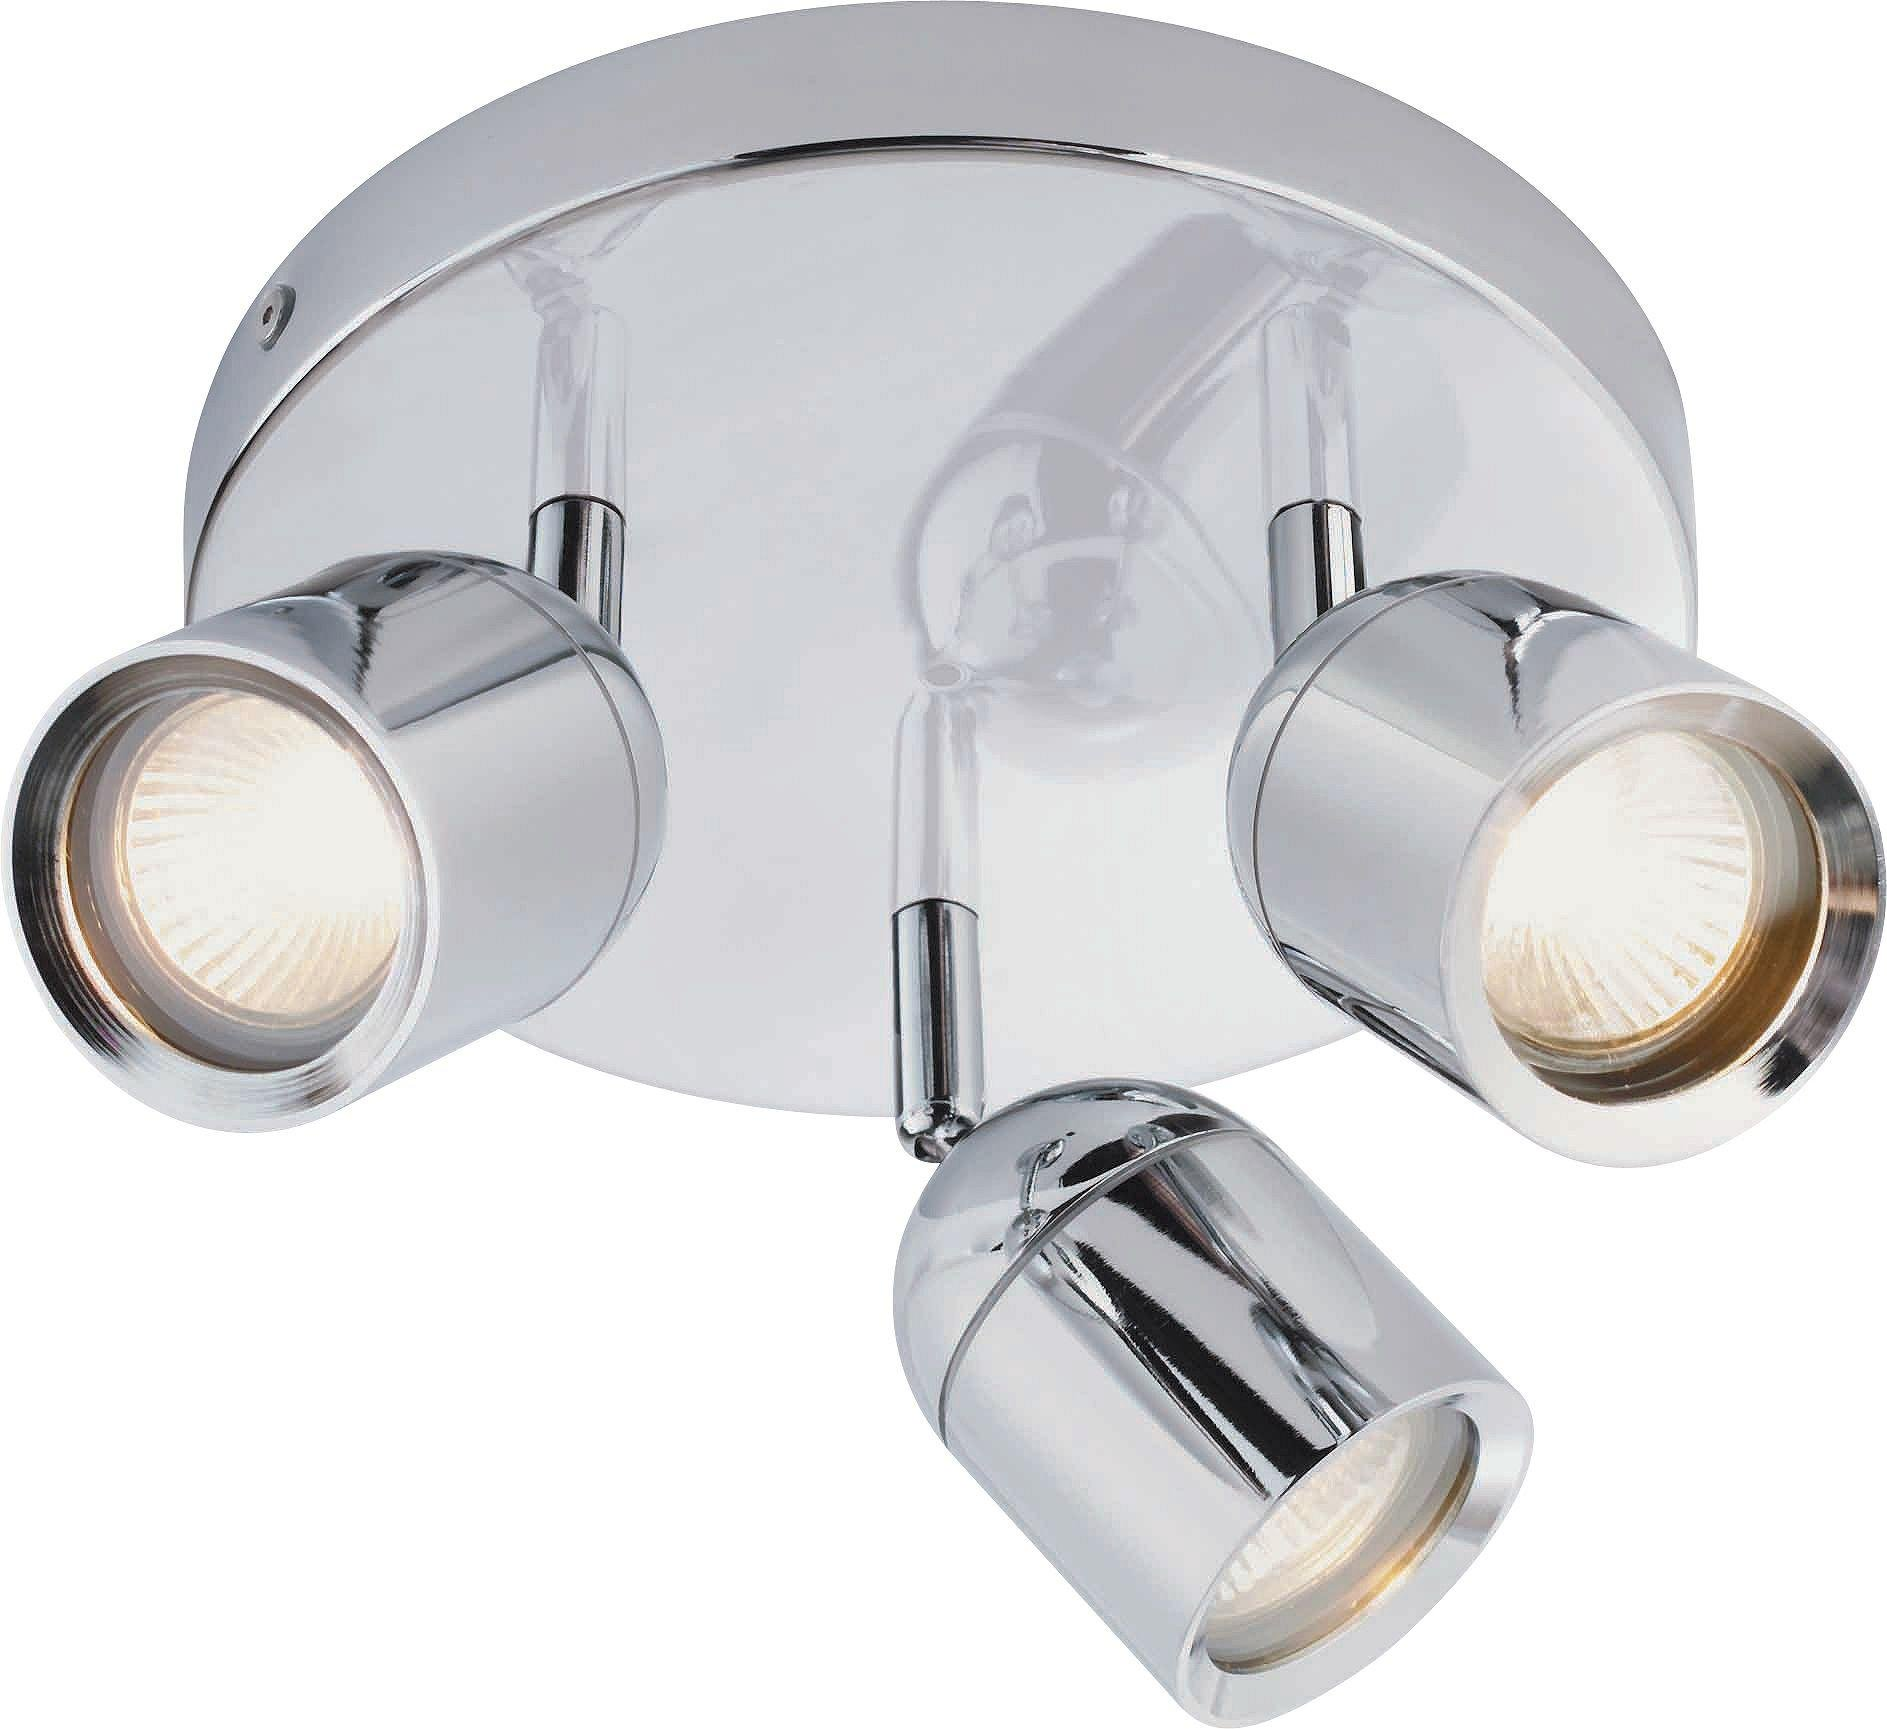 Bathroom Light Fittings results for bathroom light fittings in home and garden, lighting